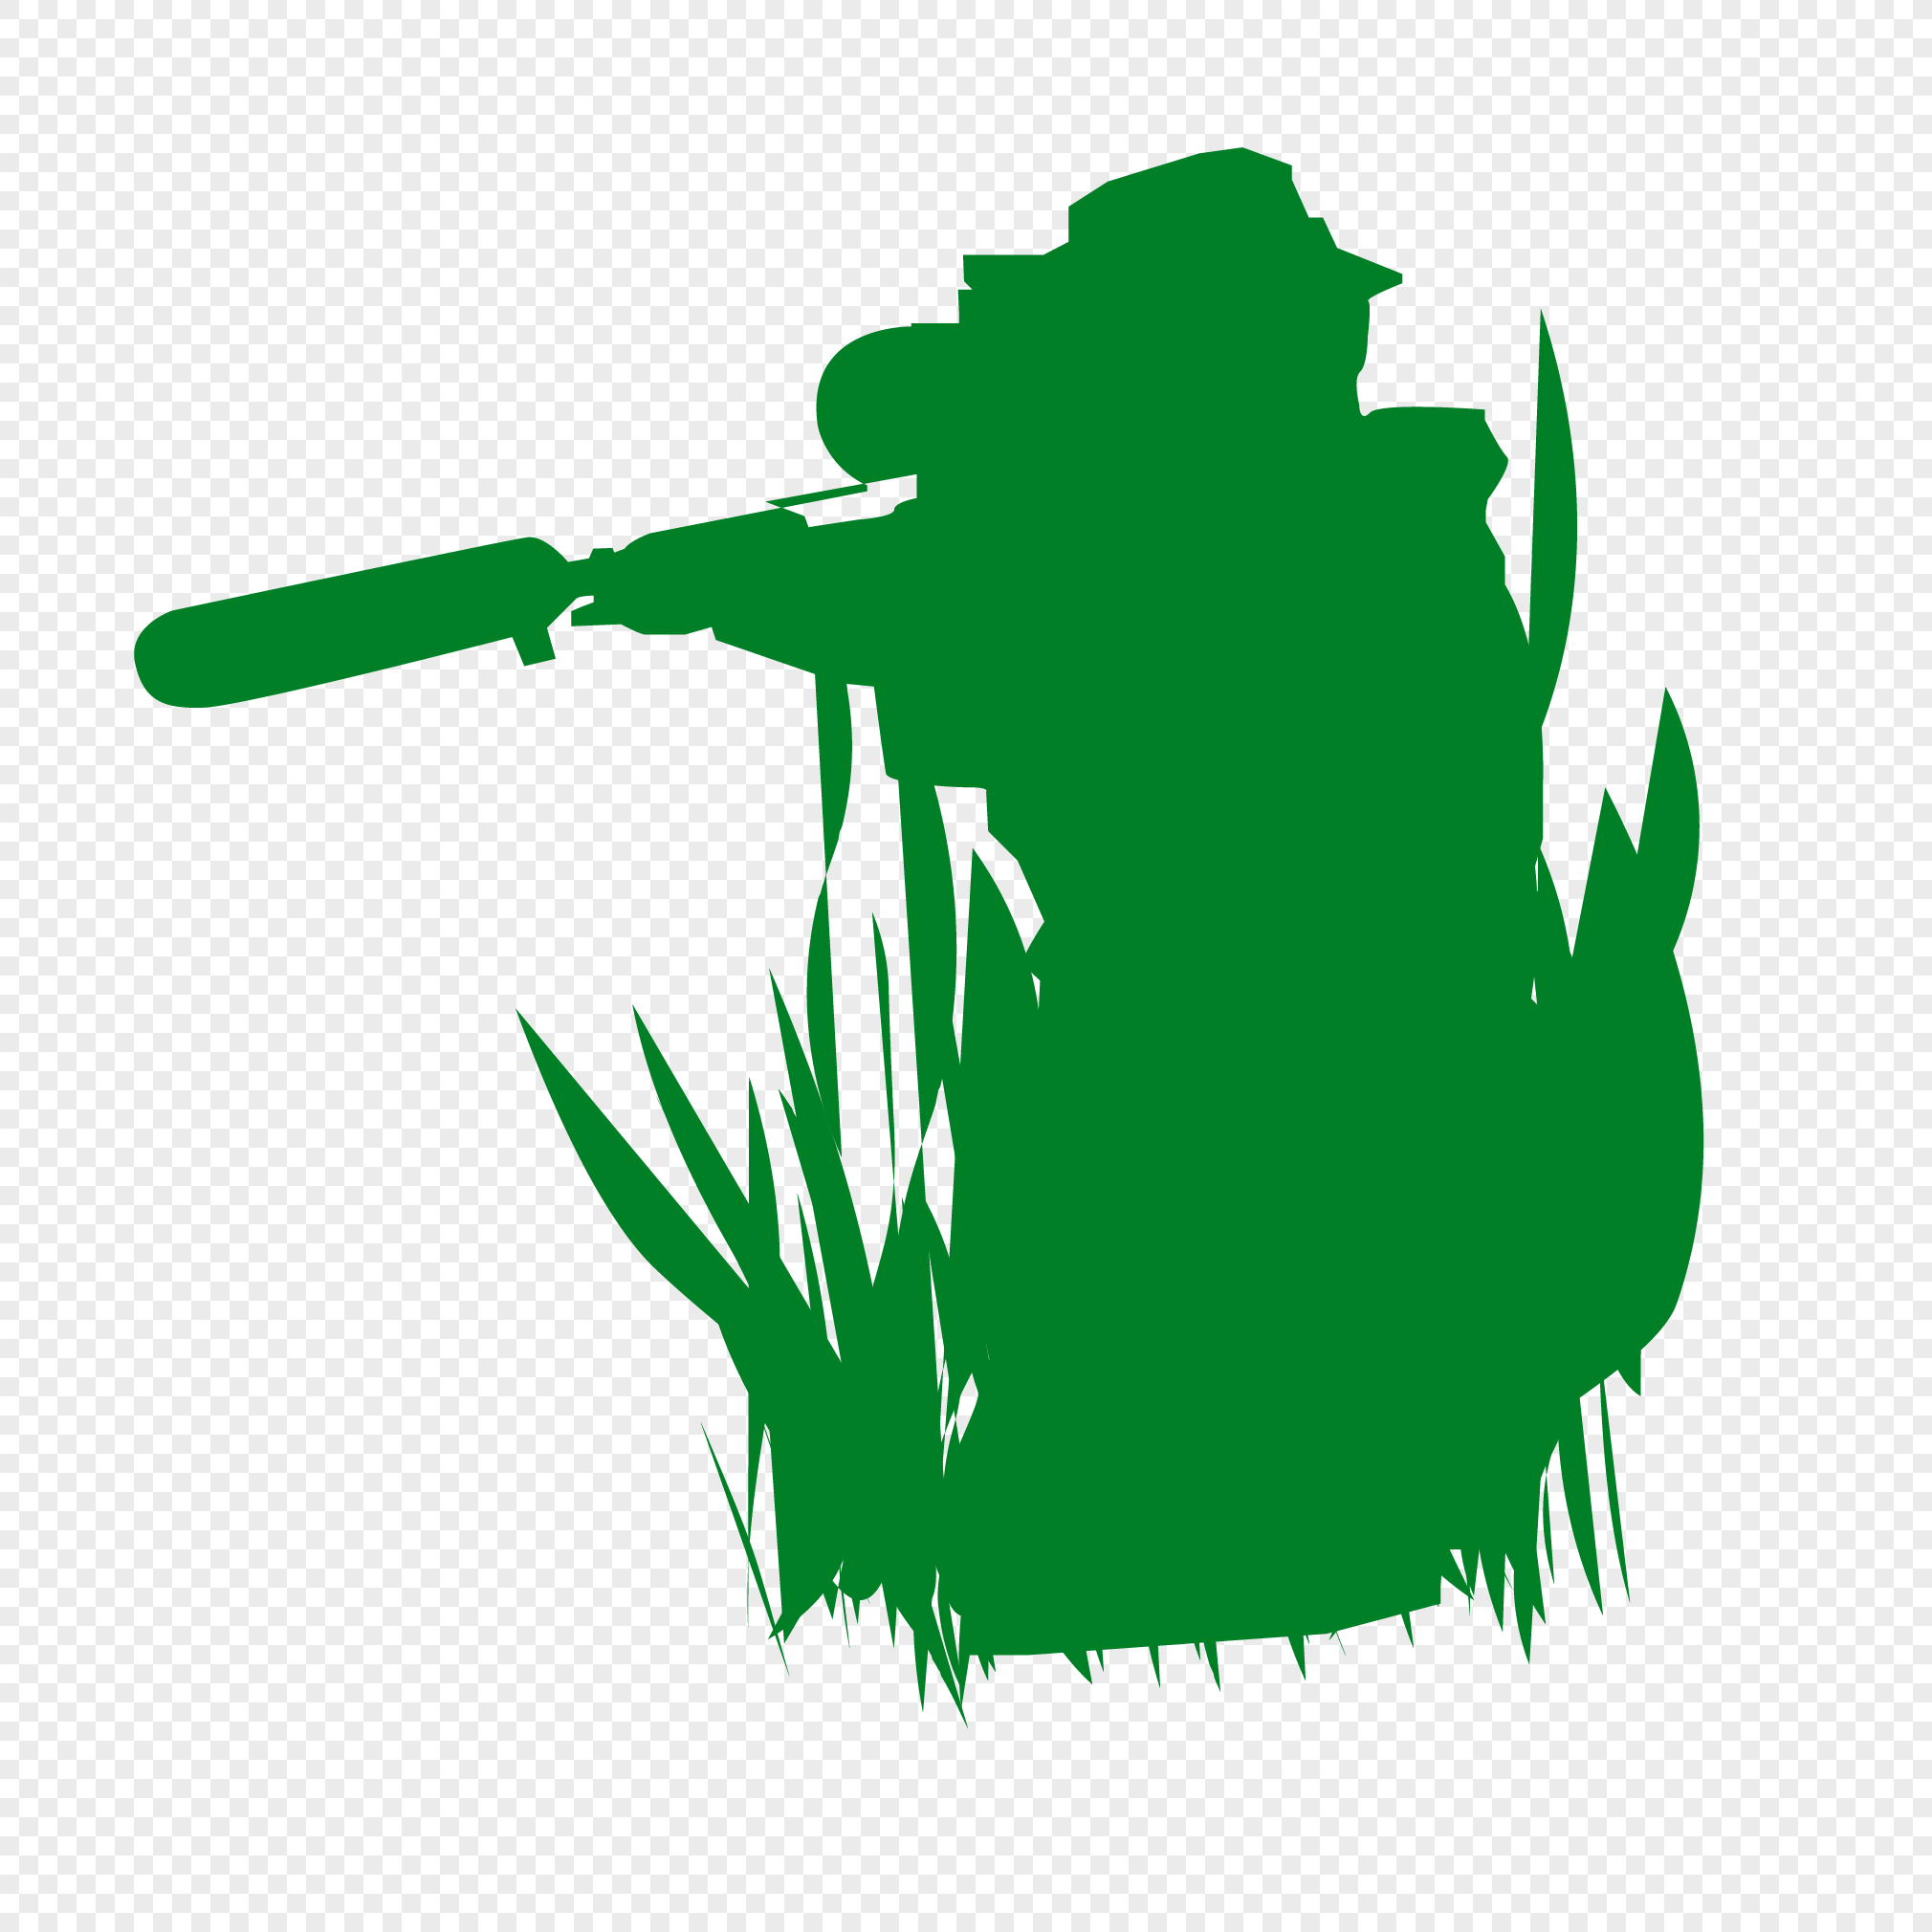 soldier silhouette vector material png image picture free download